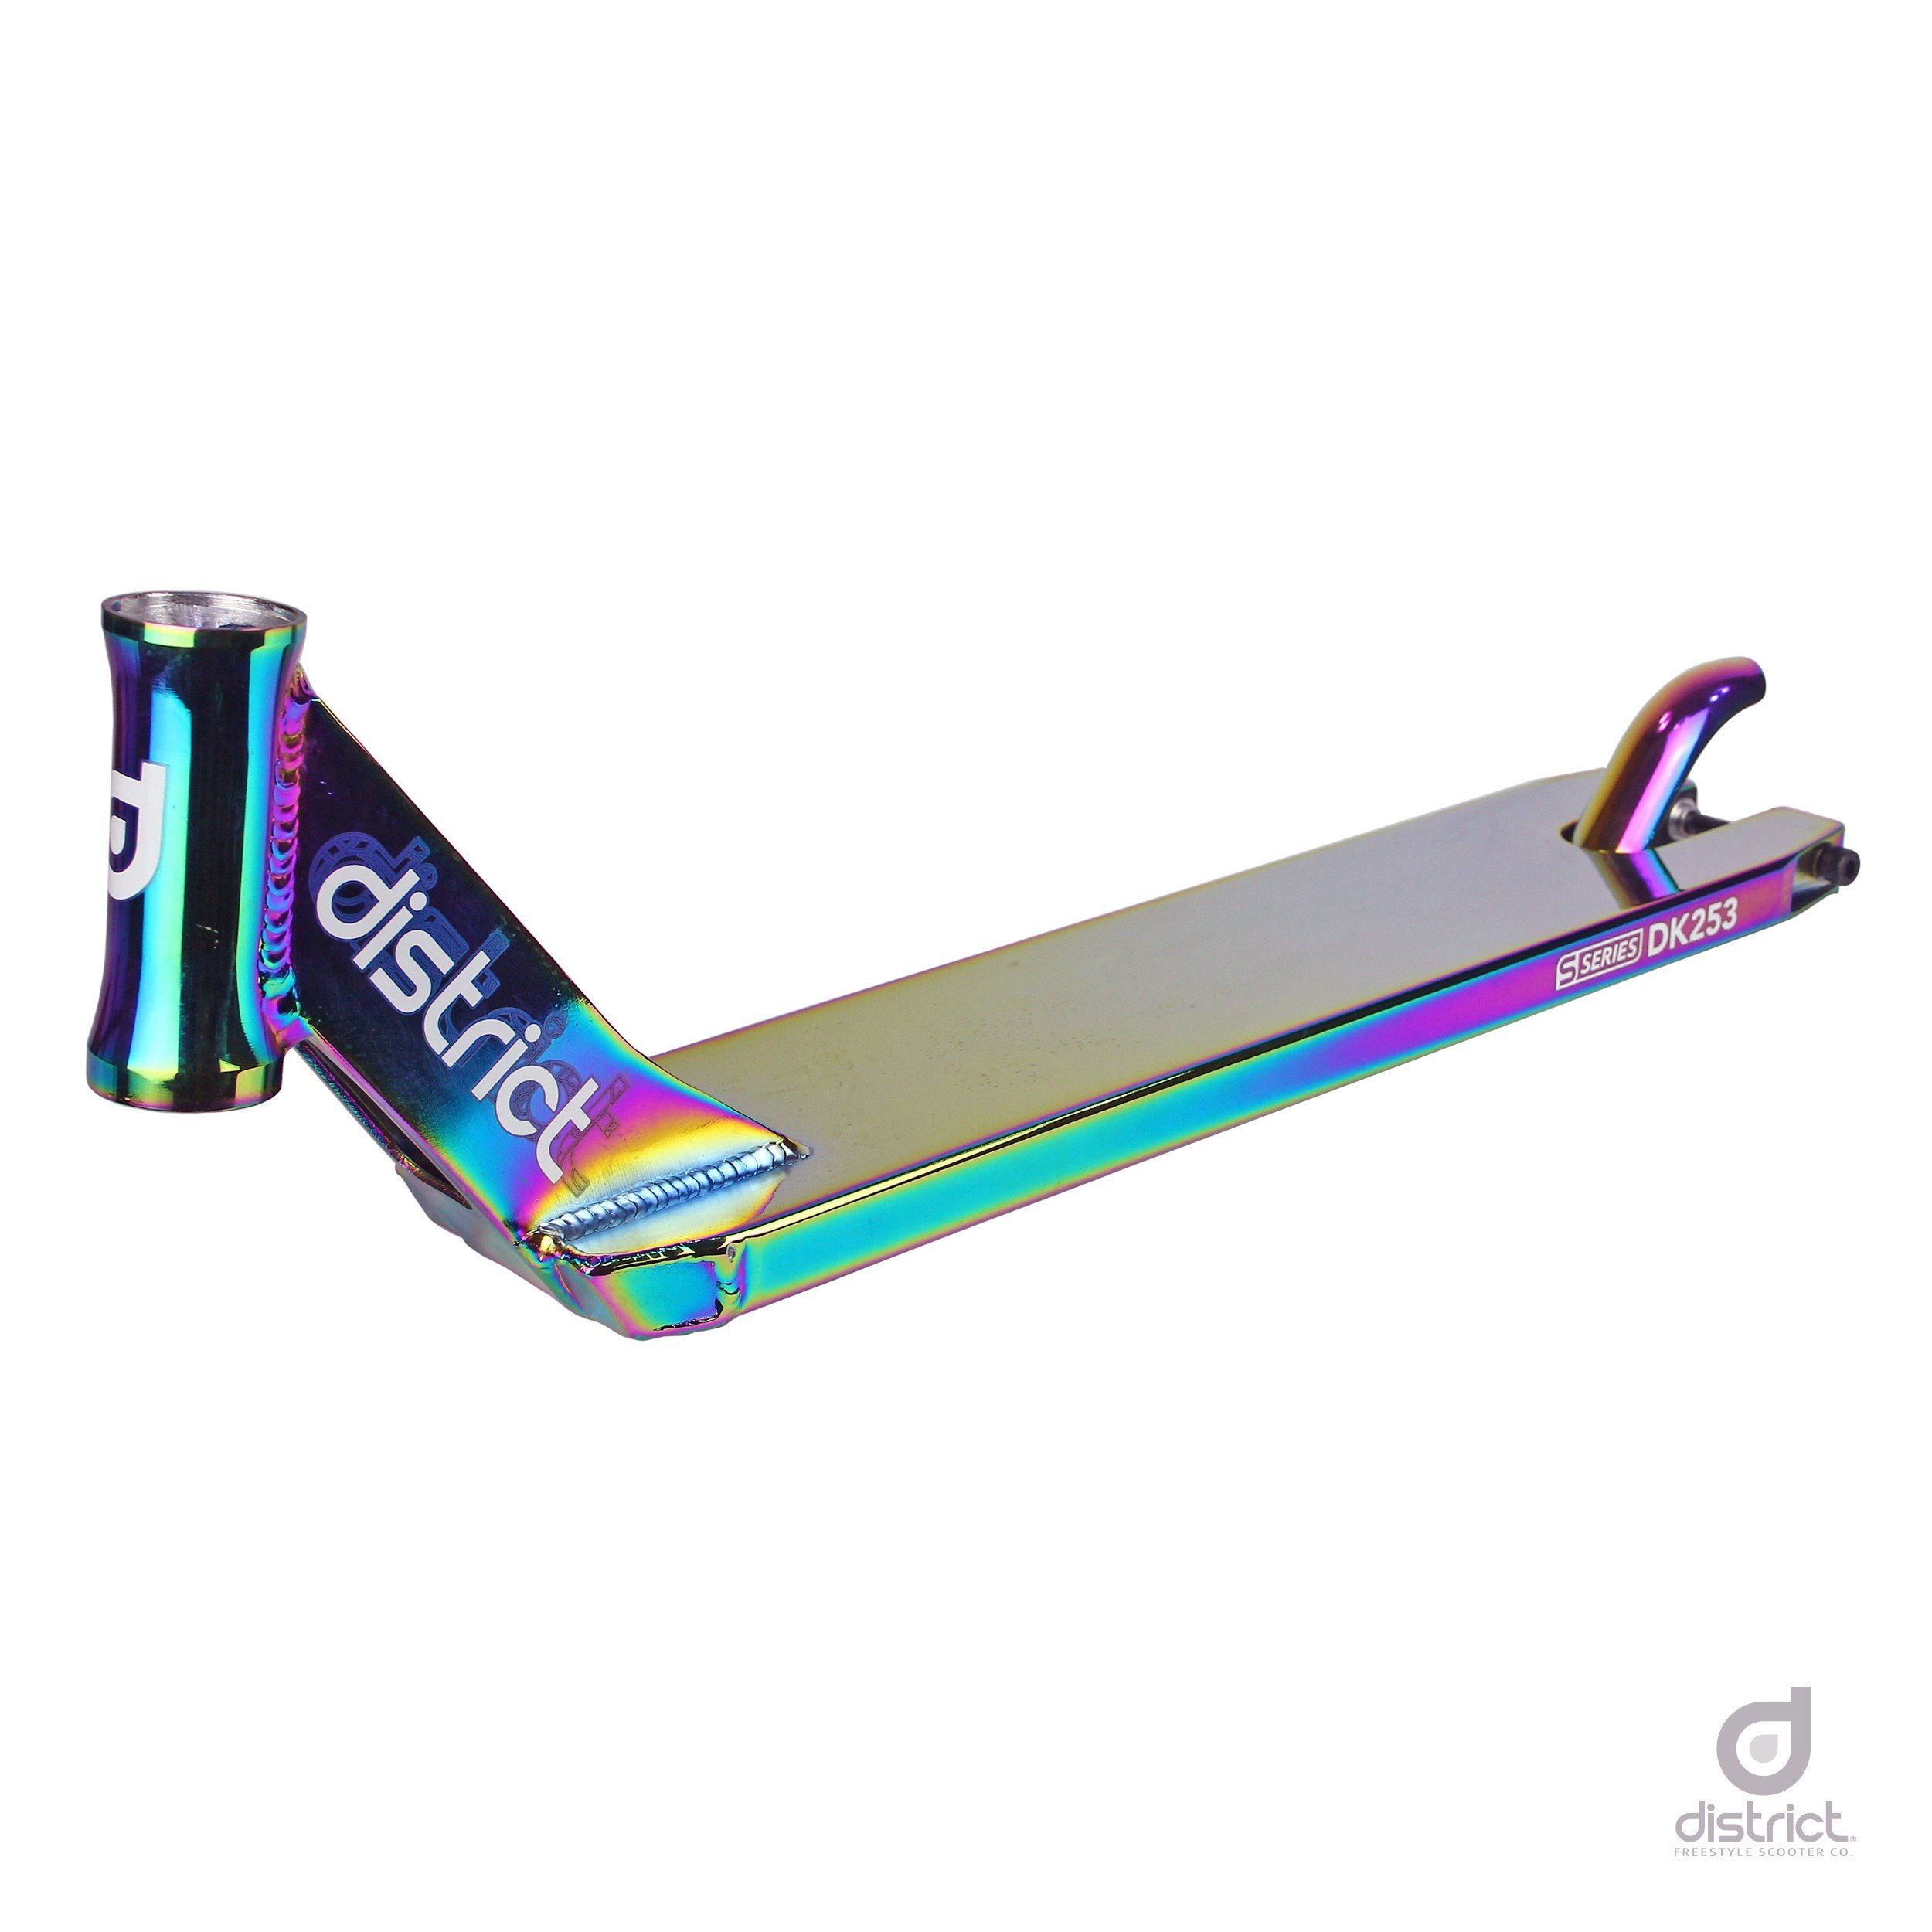 District DK253 Pro Scooter Deck (Neo Chrome)